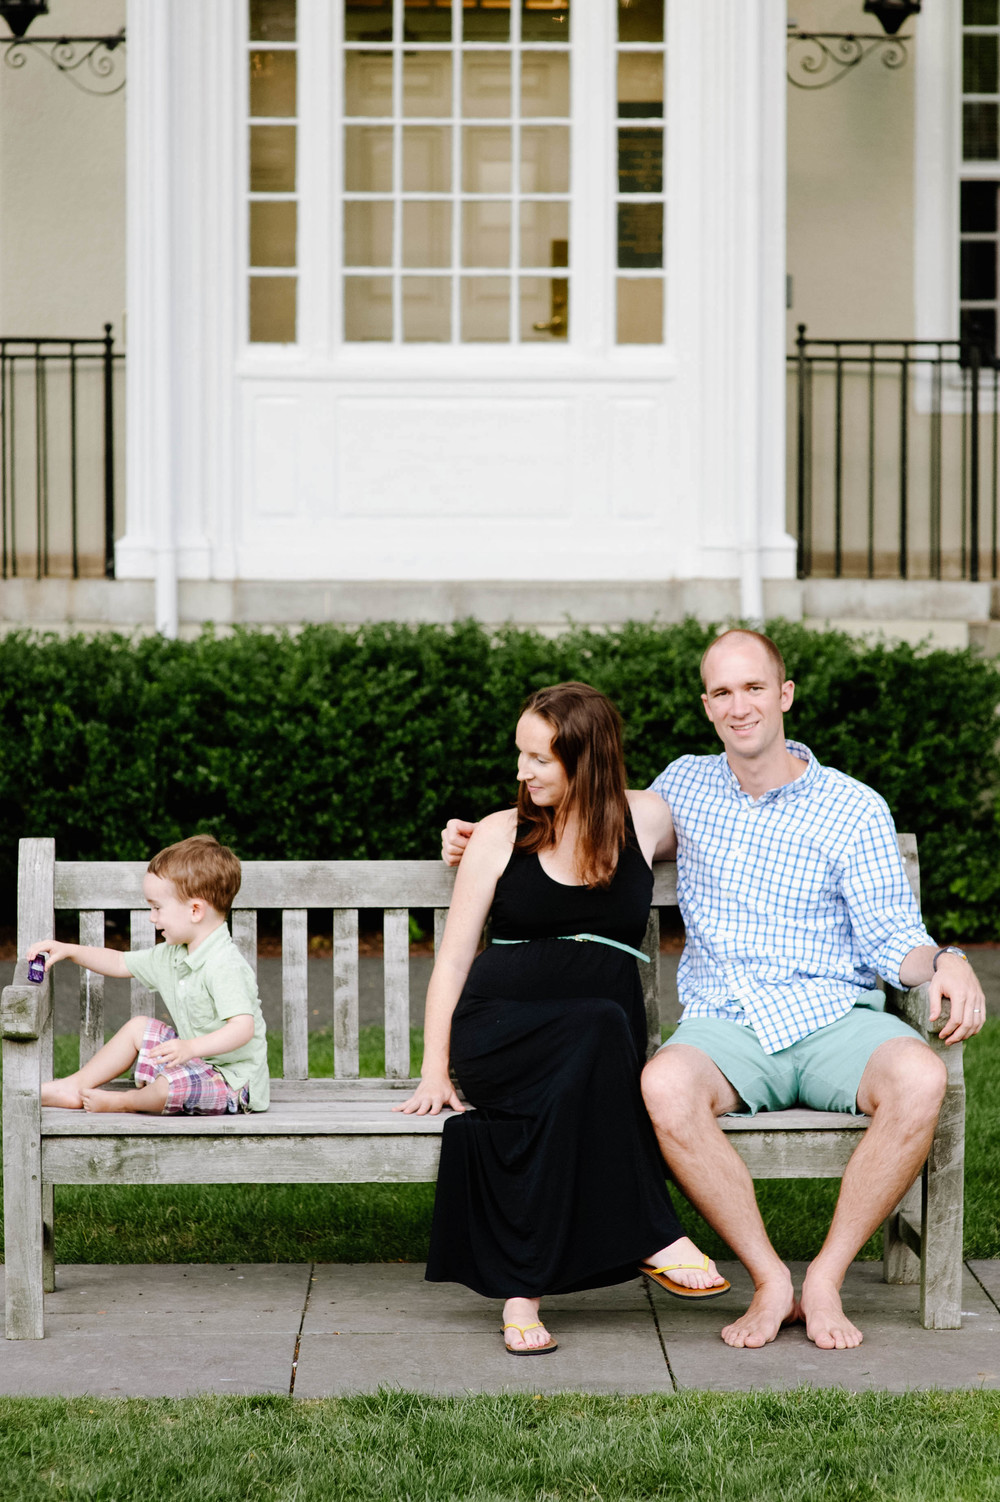 Family_Portrait_Shoot_Boston001.jpg